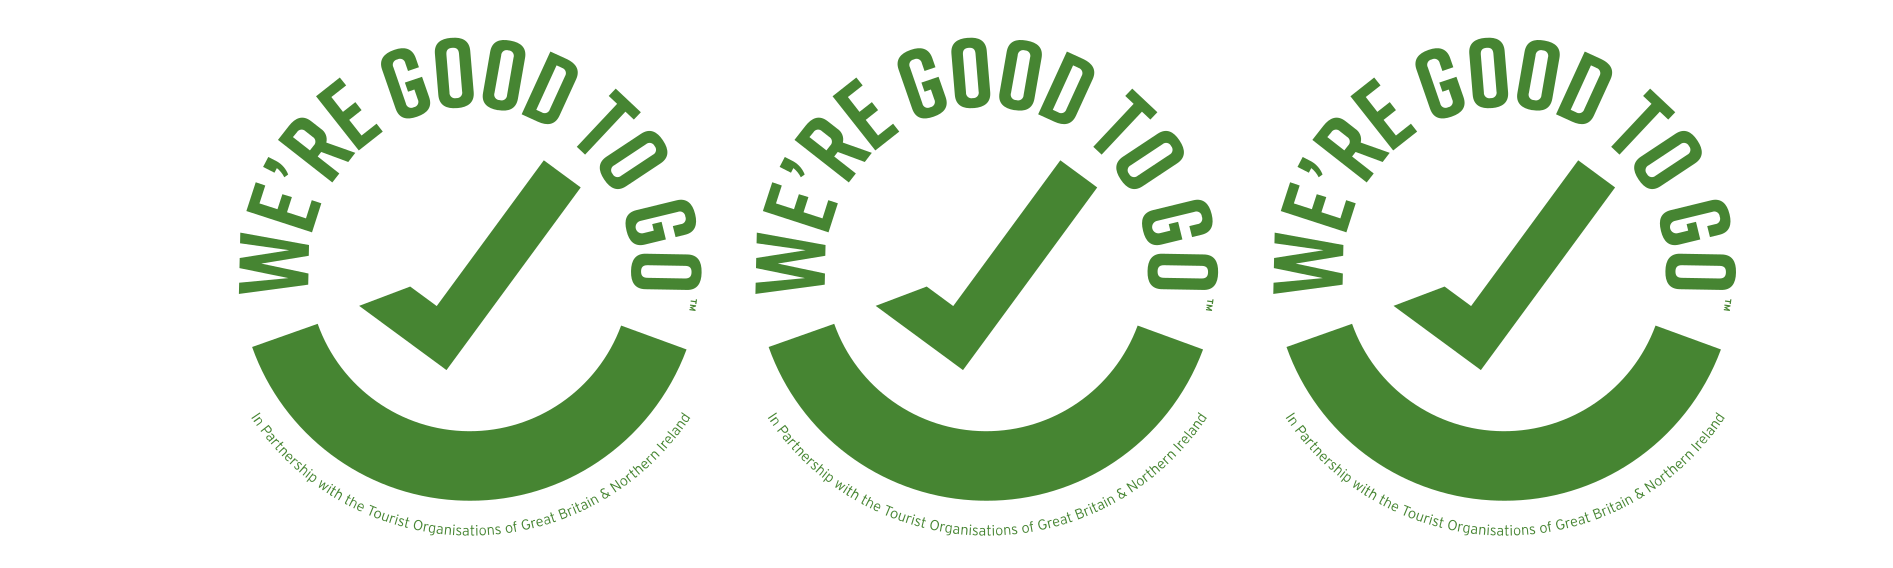 'We're Good To Go' scheme launched